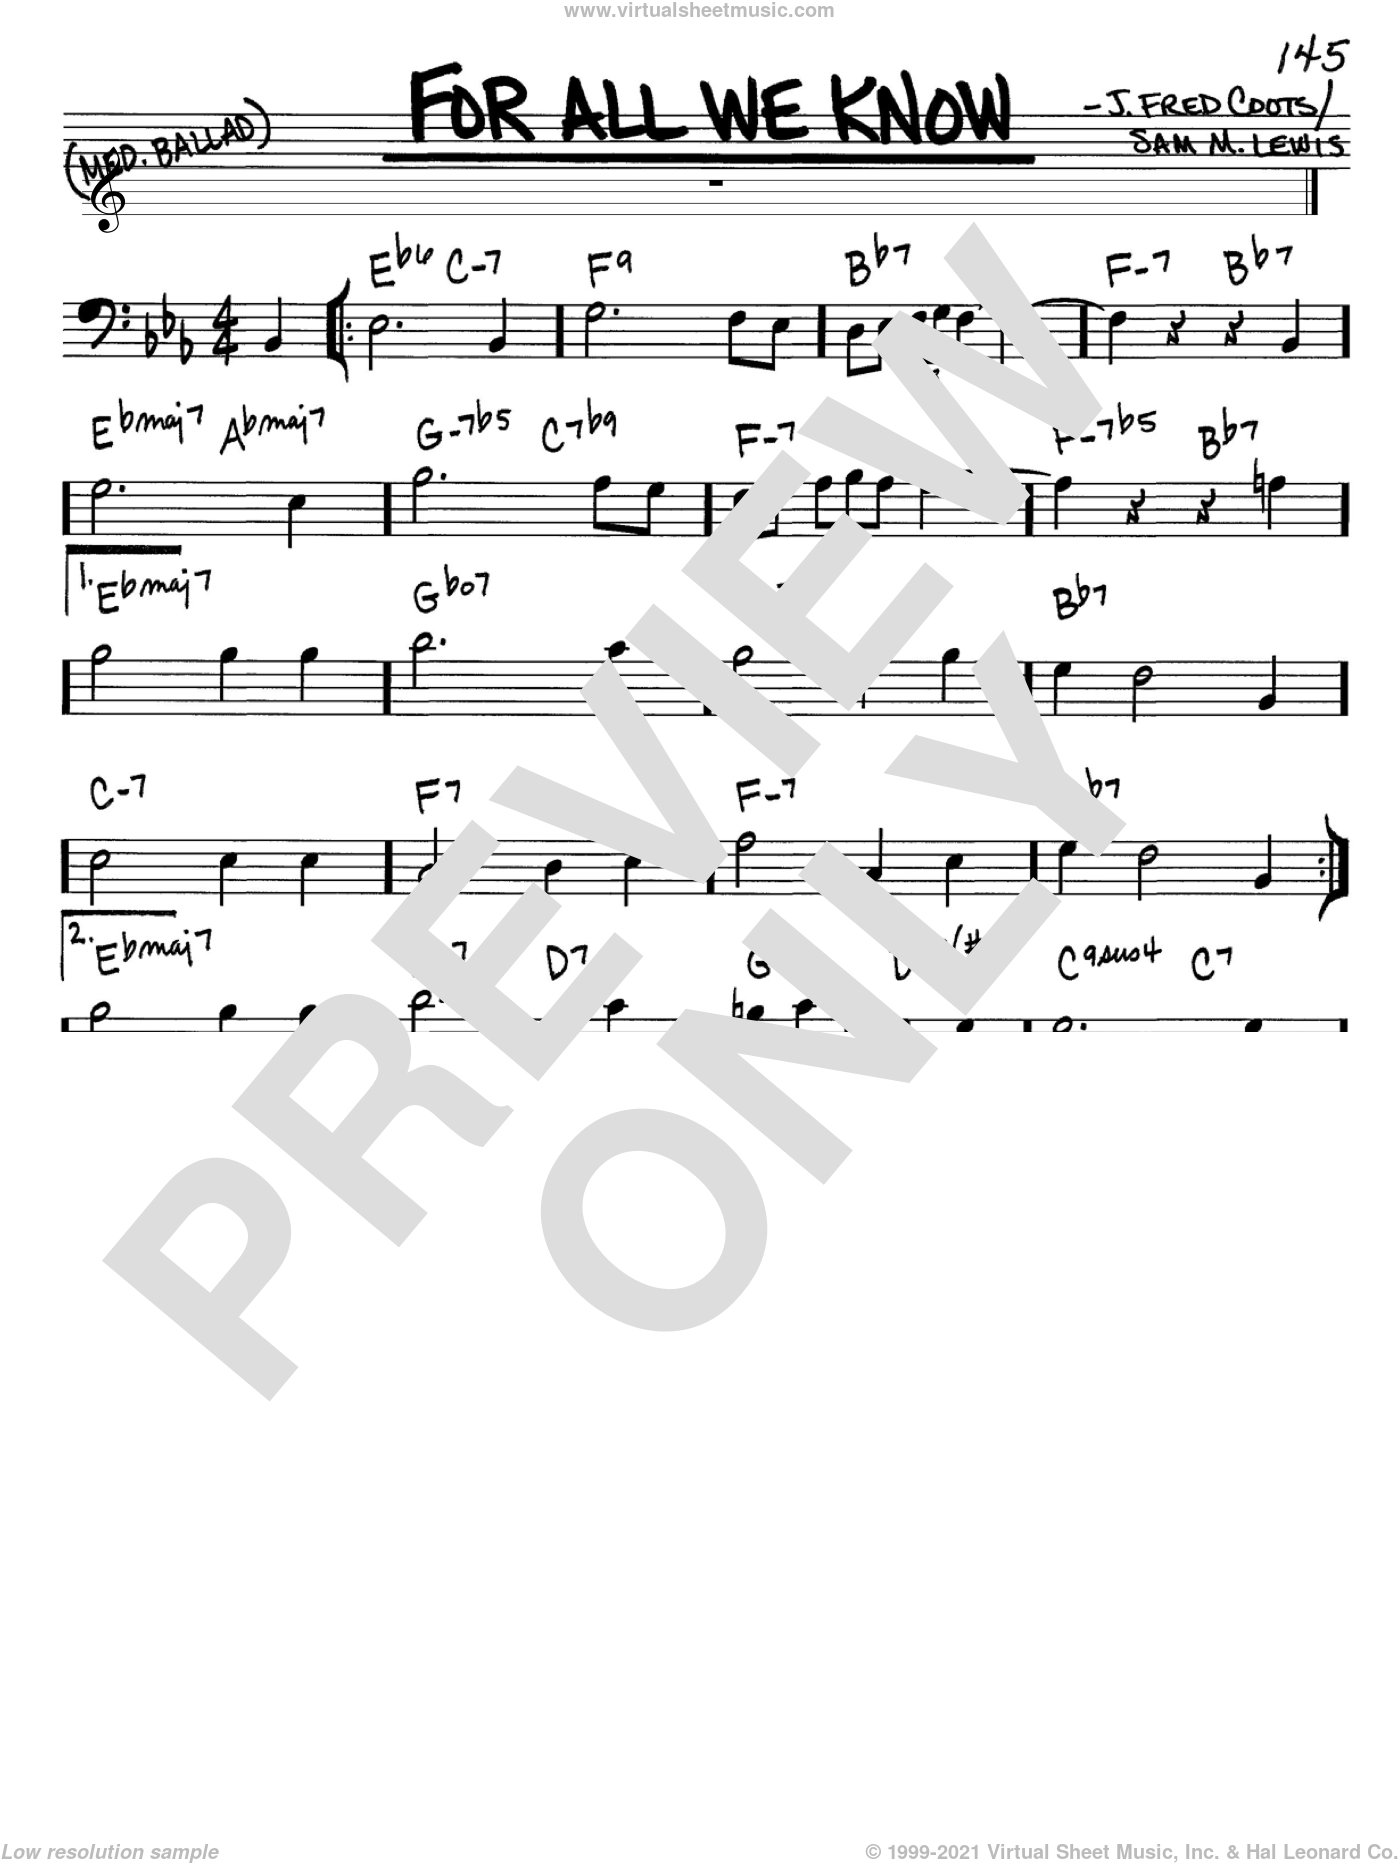 For All We Know sheet music for voice and other instruments (Bass Clef ) by J. Fred Coots